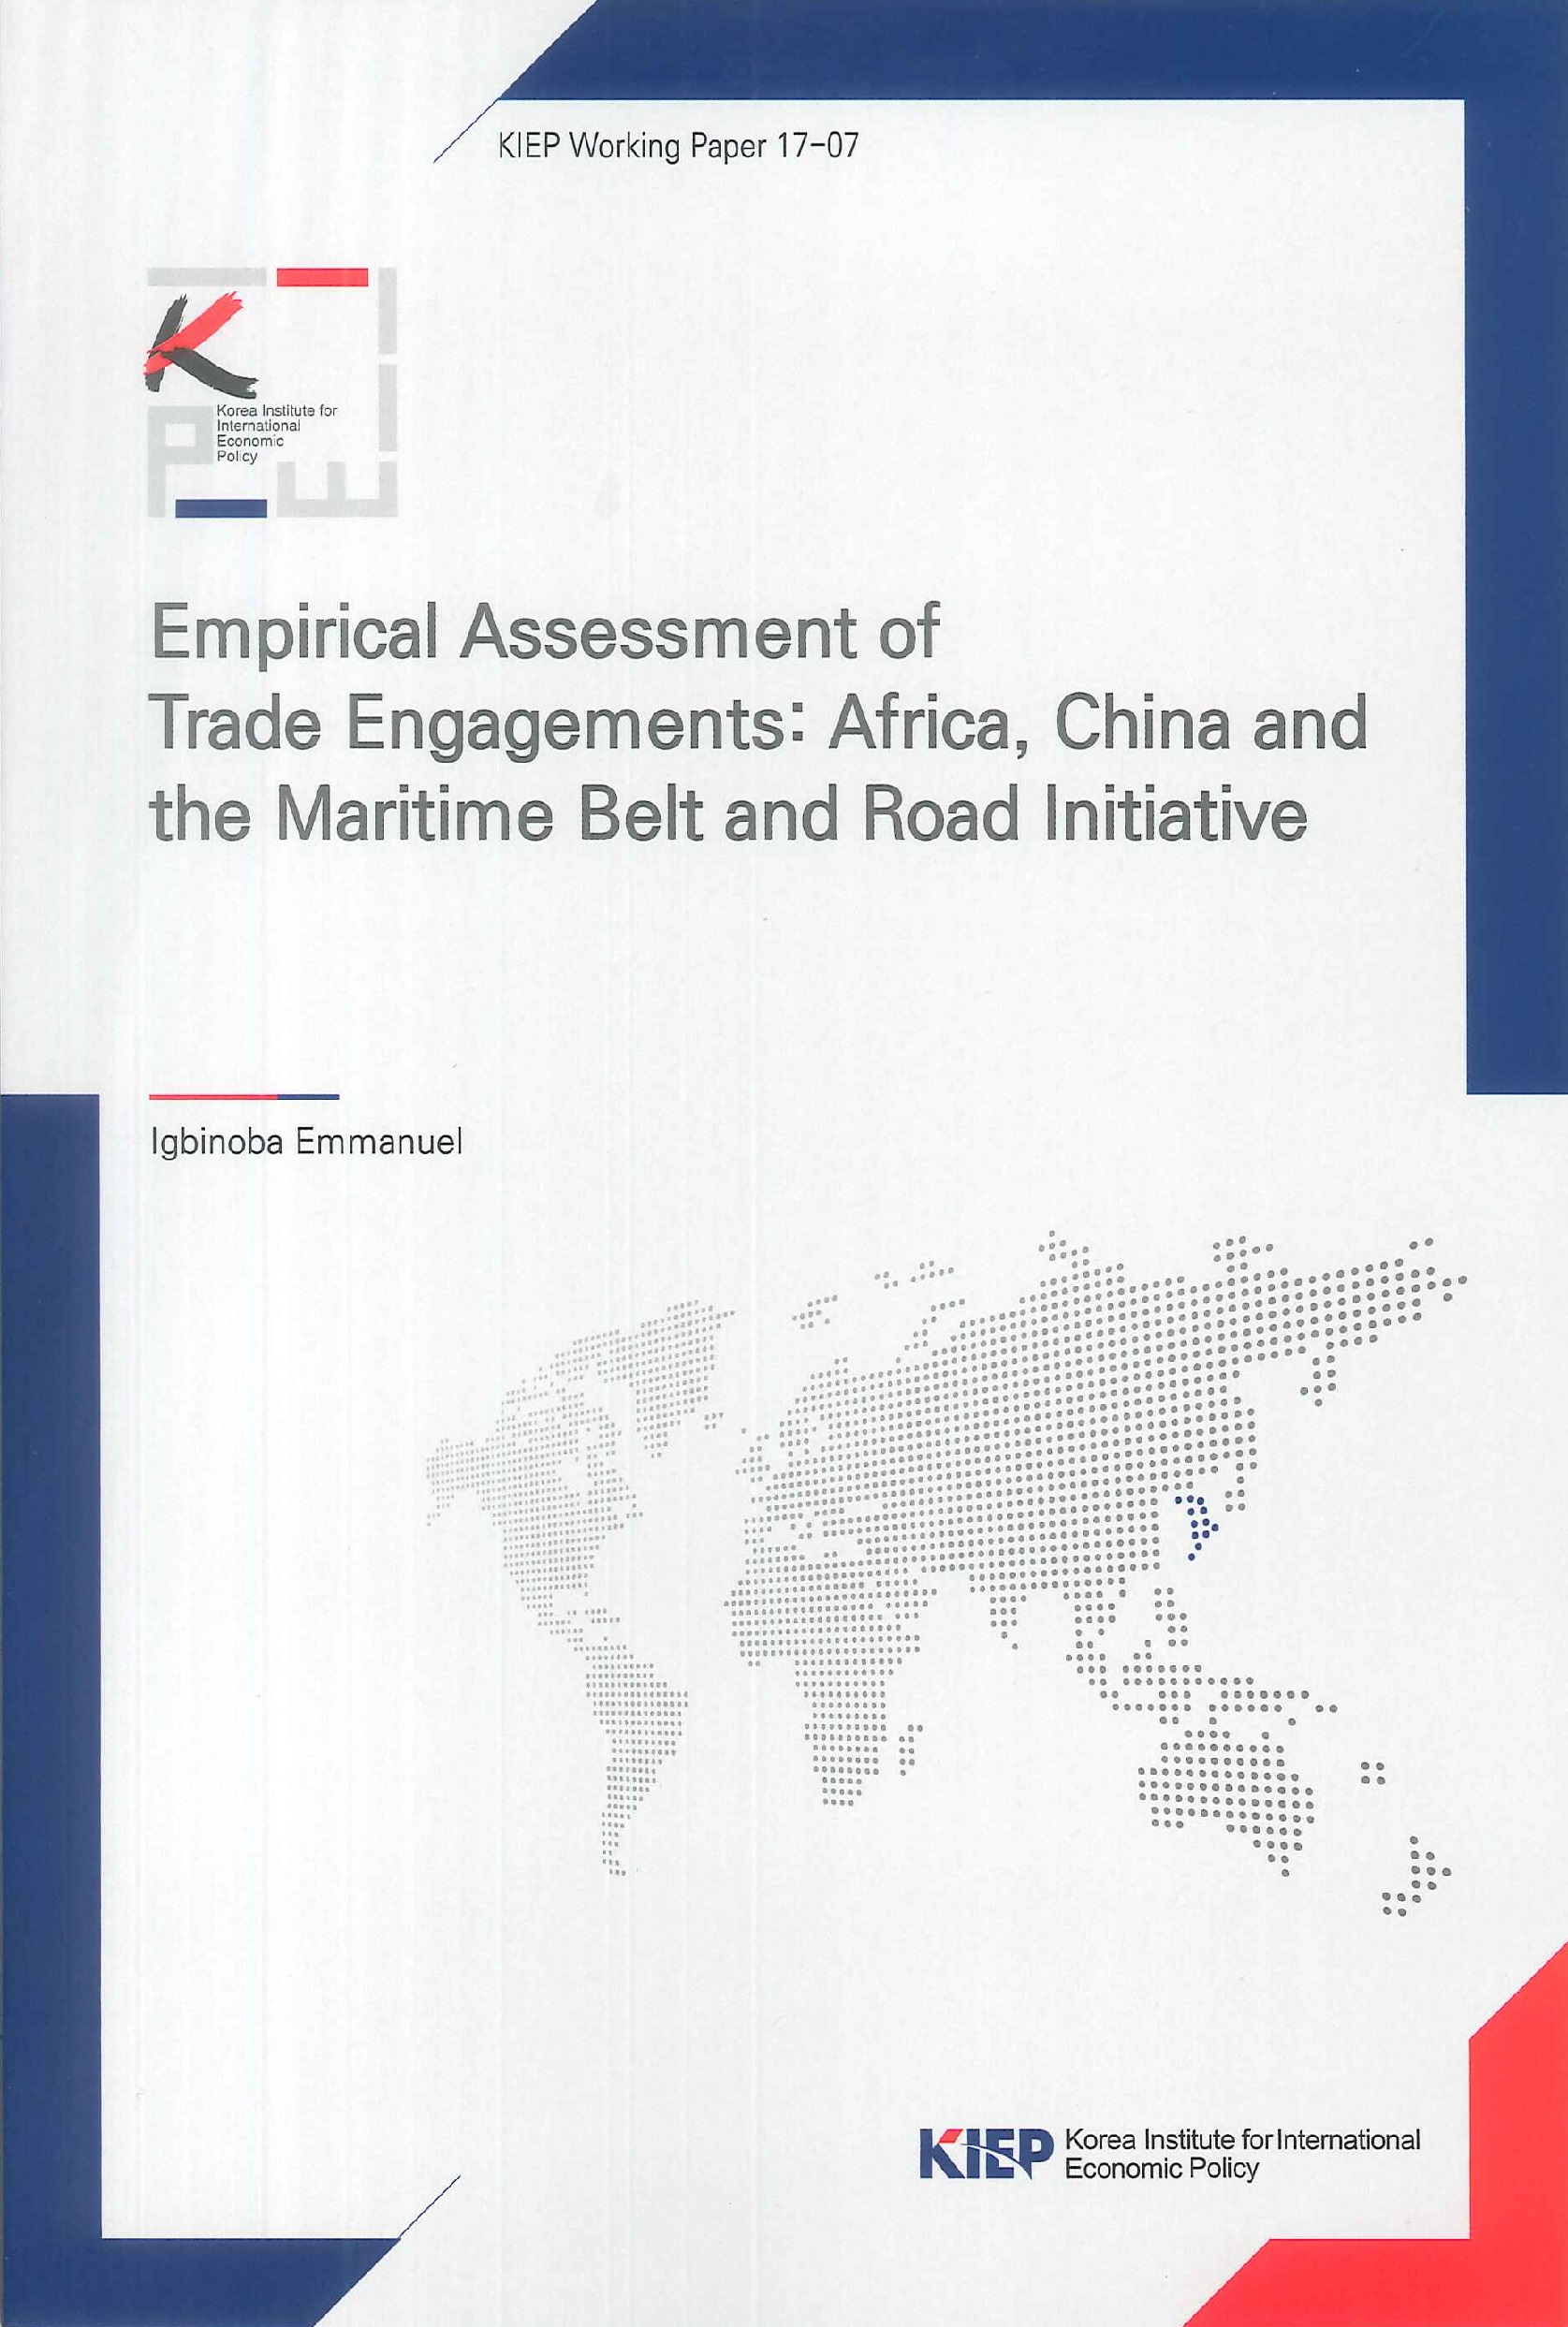 Empirical assessment of trade engagements:Africa, China and the maritime belt and road initiative